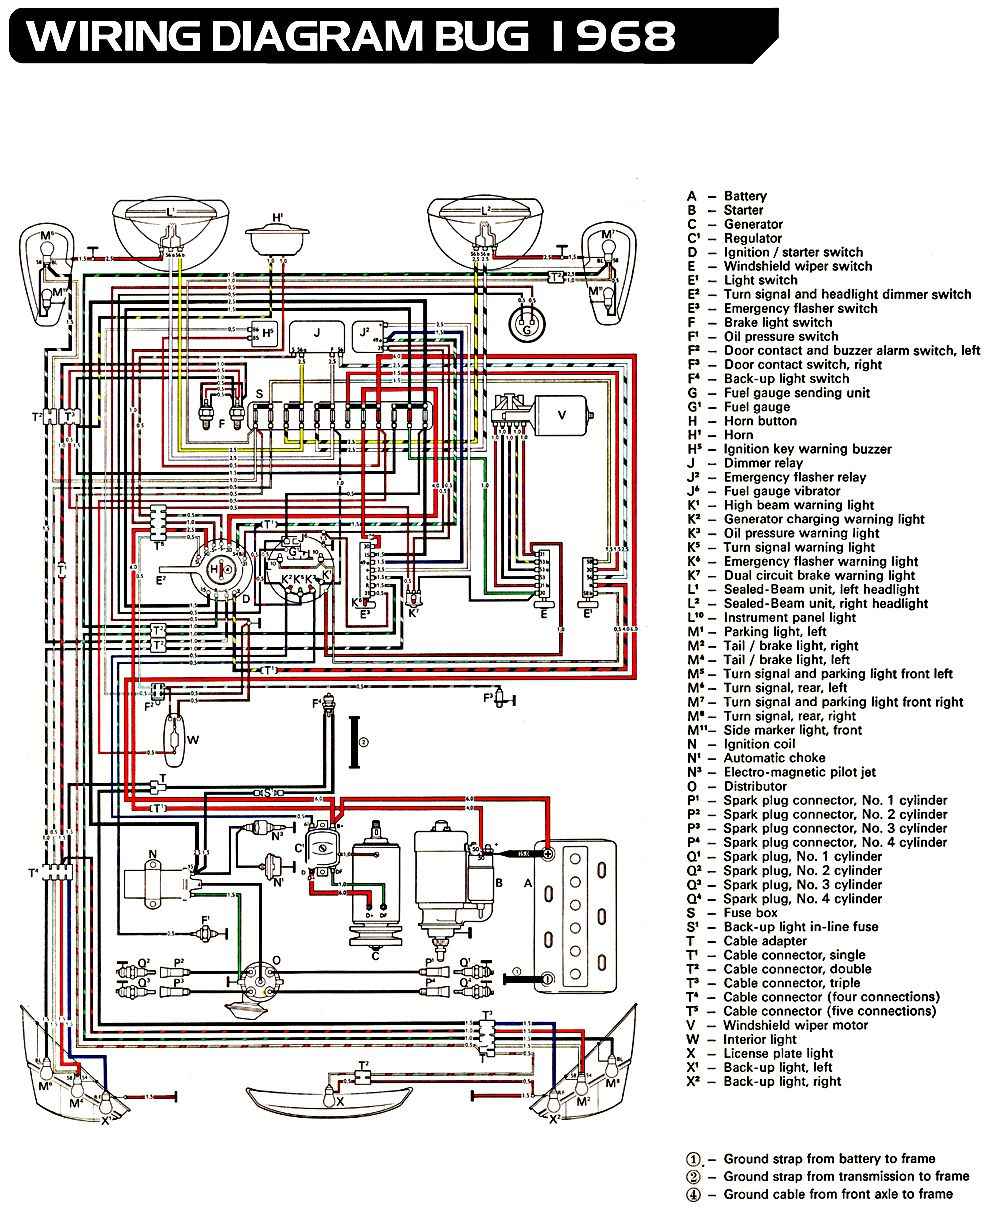 3a1908112d3826270ed5e3be362292bf vw bug ignition wiring diagram 73 vw wiring diagram free vw bus samba wiring diagram at bayanpartner.co